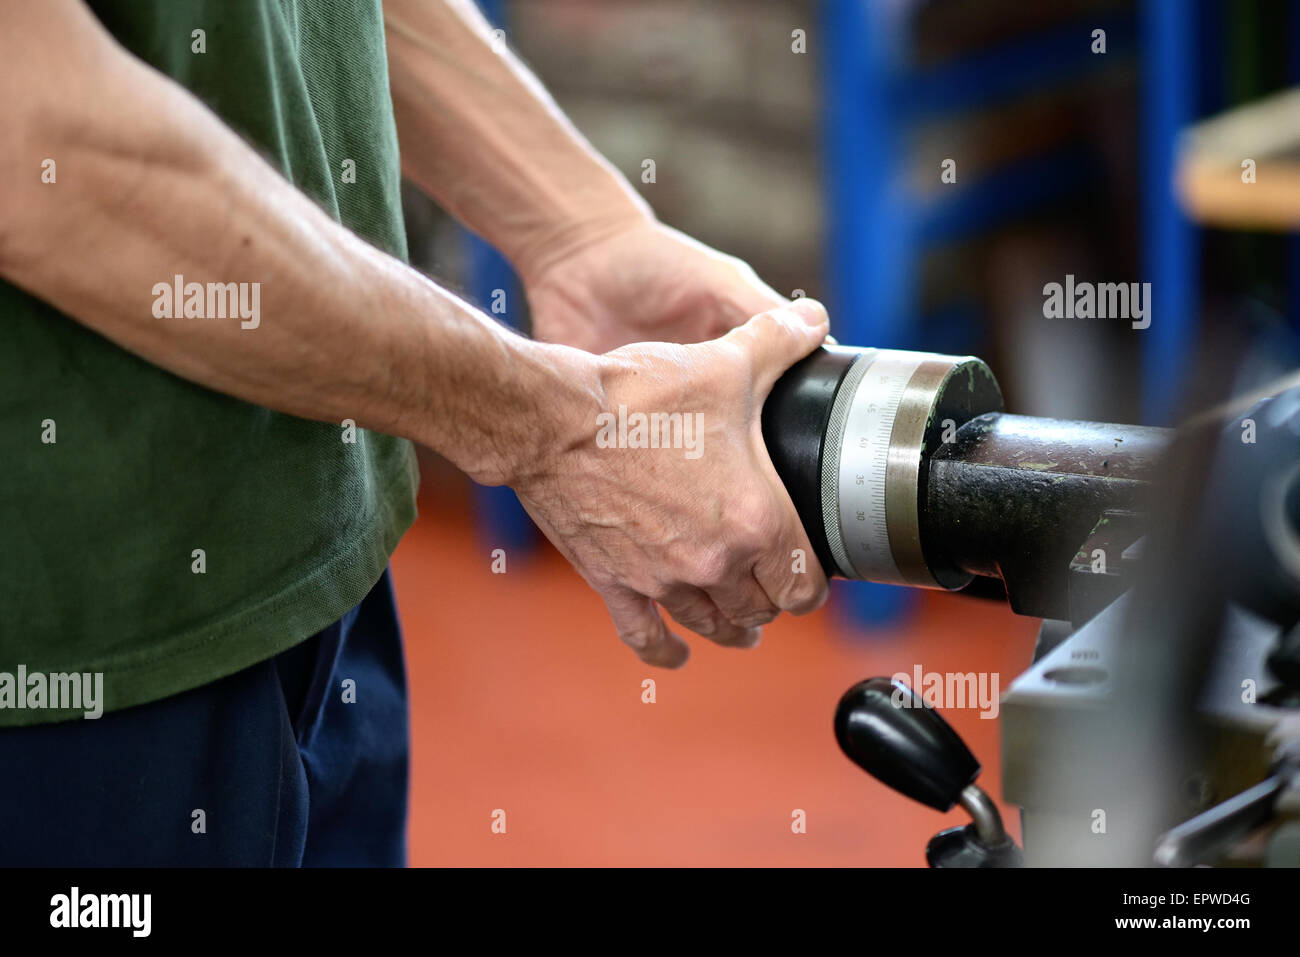 Close up of the hands of a man working on machinery in an engineering workshop or factory - Stock Image